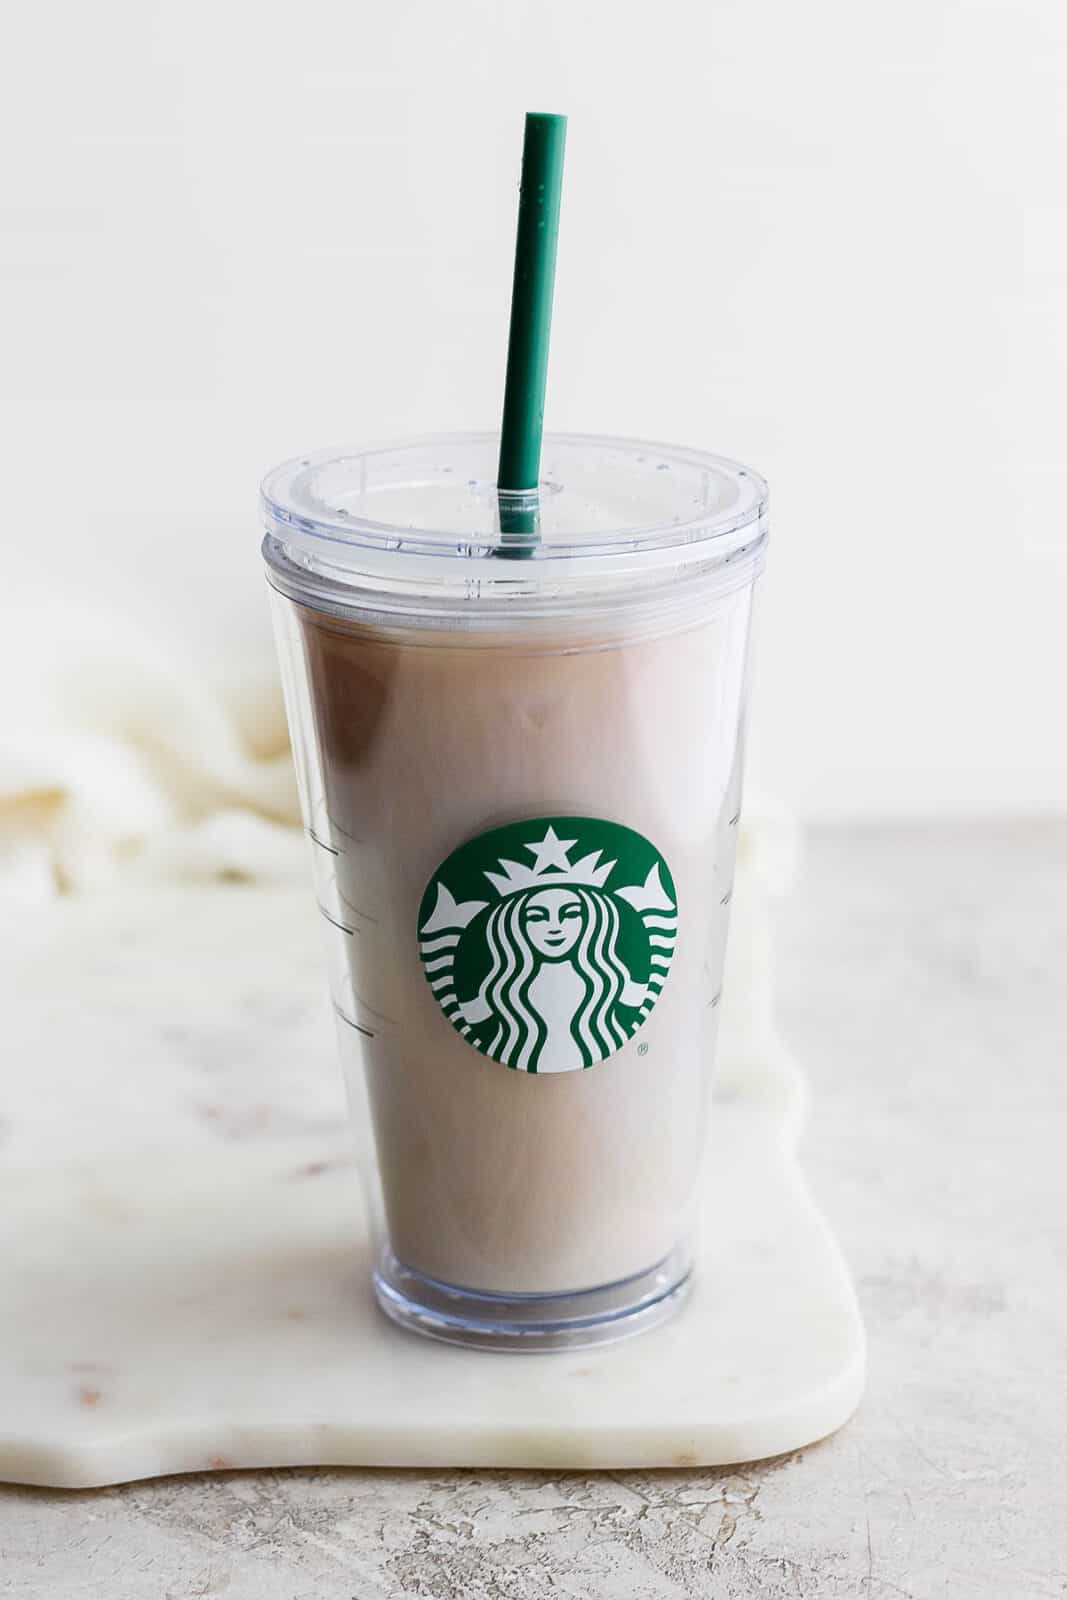 Iced london fog in a starbucks cup.